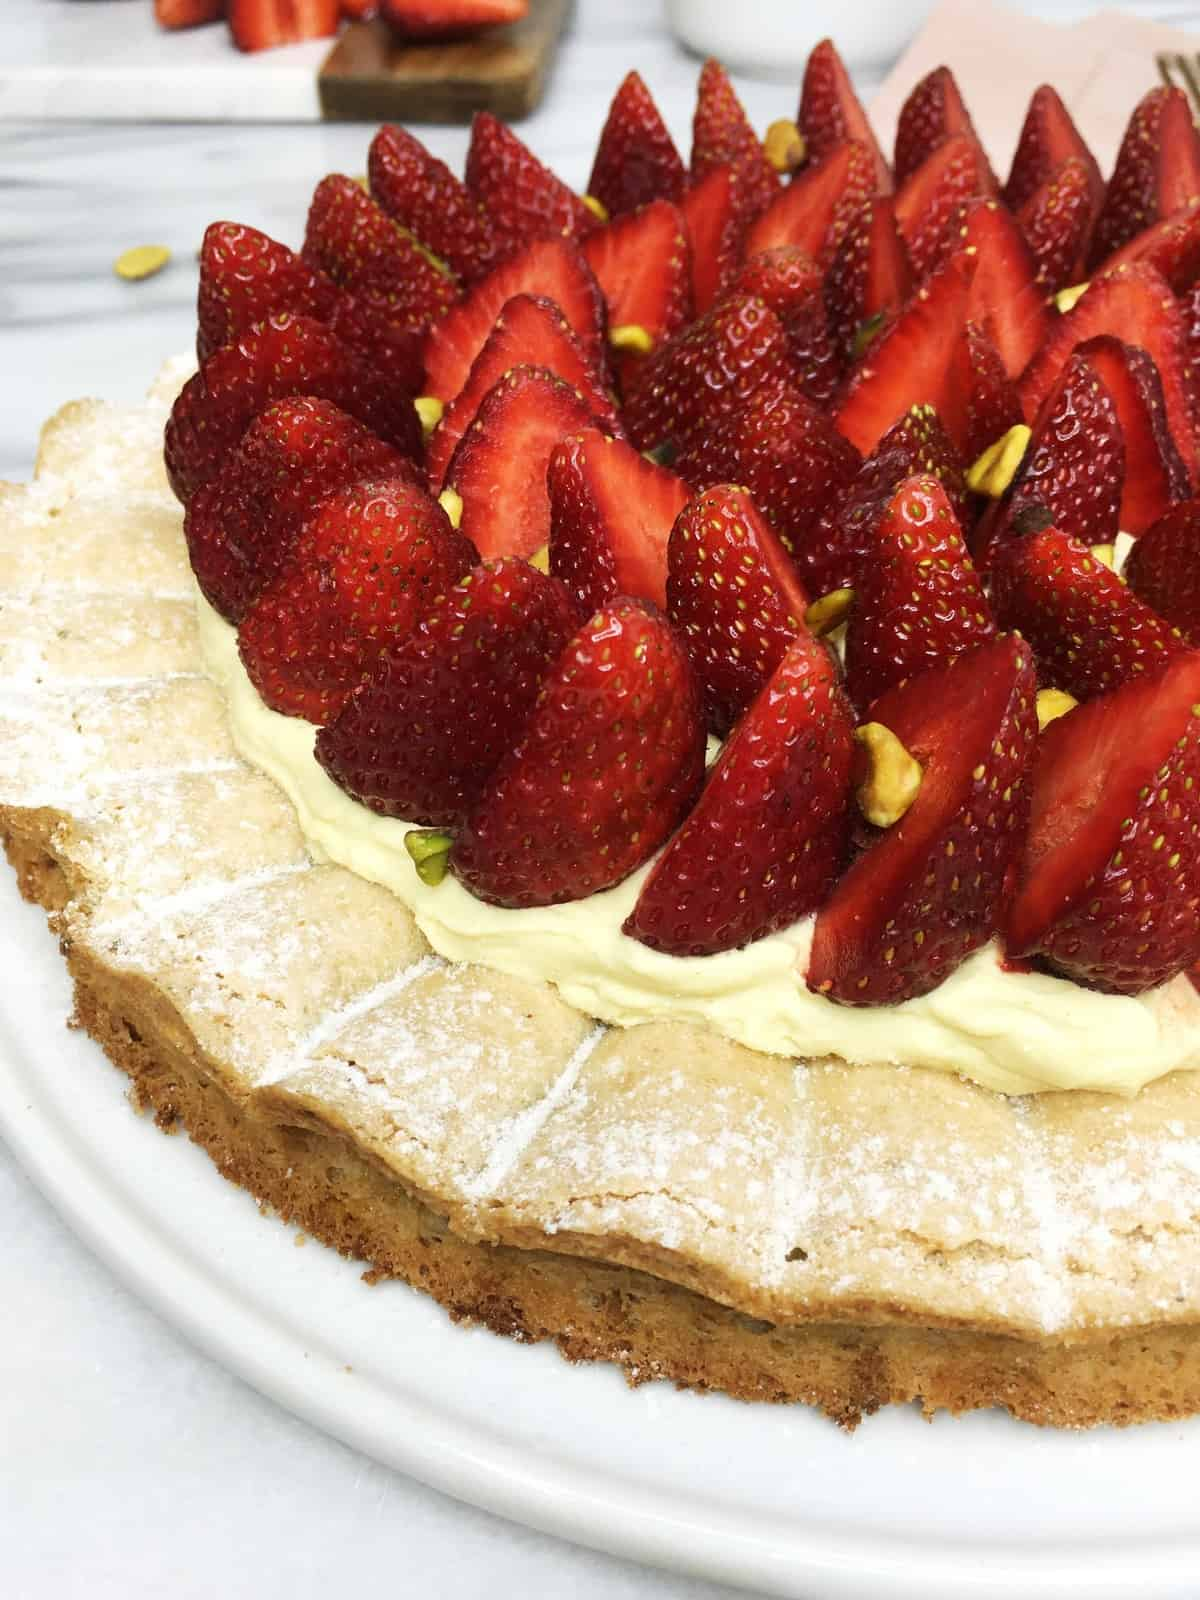 Recipe: Pistachio dacquoise cake topped with cream and strawberries on a white plate